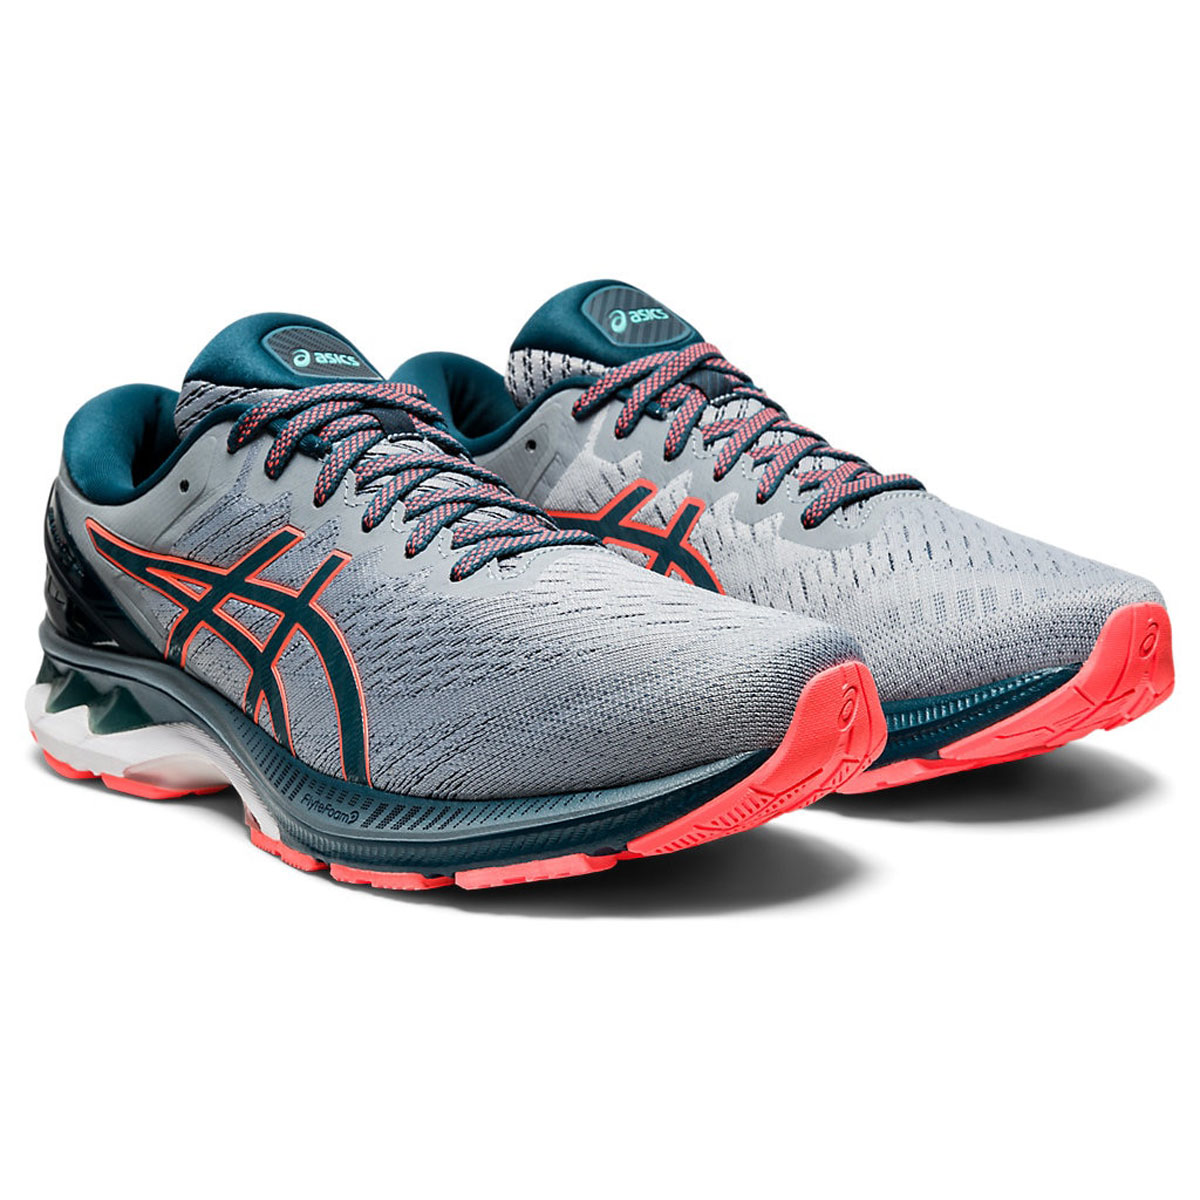 Men's Asics GEL-Kayano 27 Running Shoe - Color: Sheet Rock/Magn (Regular Width) - Size: 6, Sheet Rock/Magnetic Blue, large, image 3